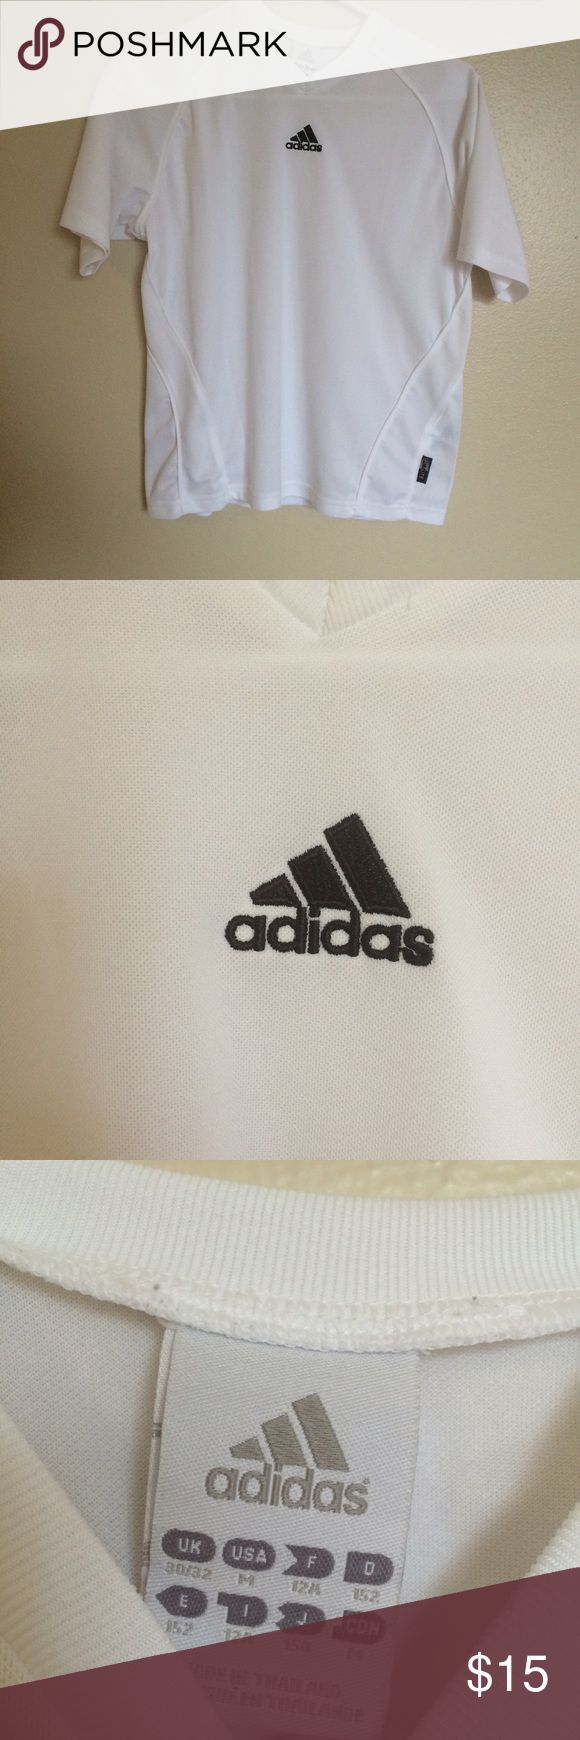 Adidas logo Tshirt Size medium Adidas Tshirt. Has the Adidas logo on the front. More of a boxy fit. Drifit so perfect for working out adidas Tops Tees - Short Sleeve